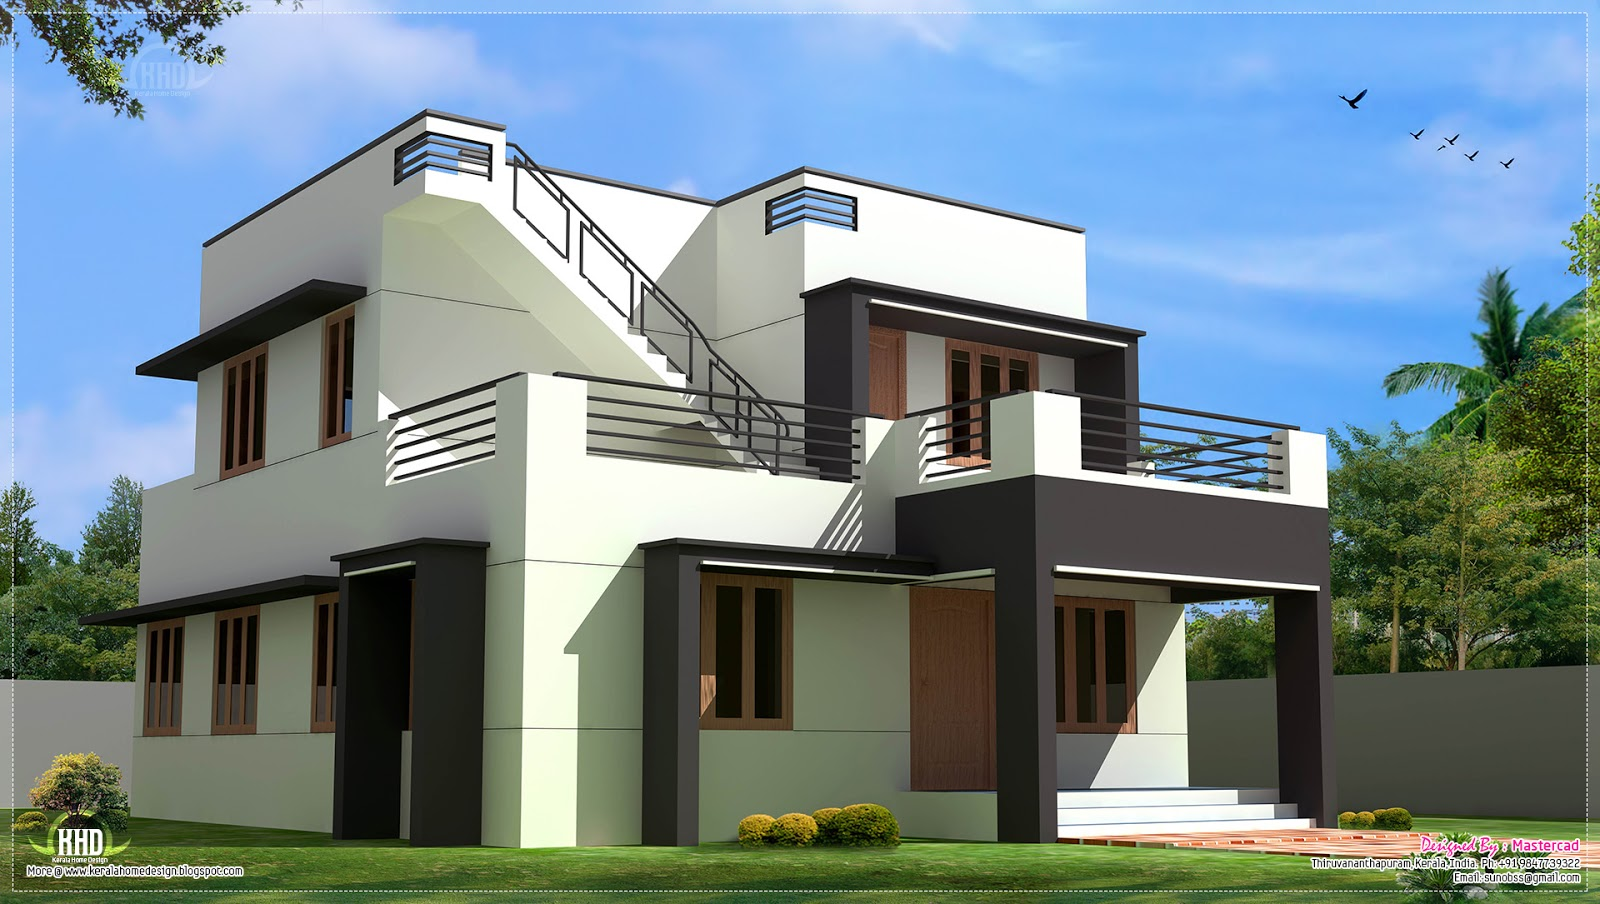 Modern house design in 1700 kerala home design Best modern home plans